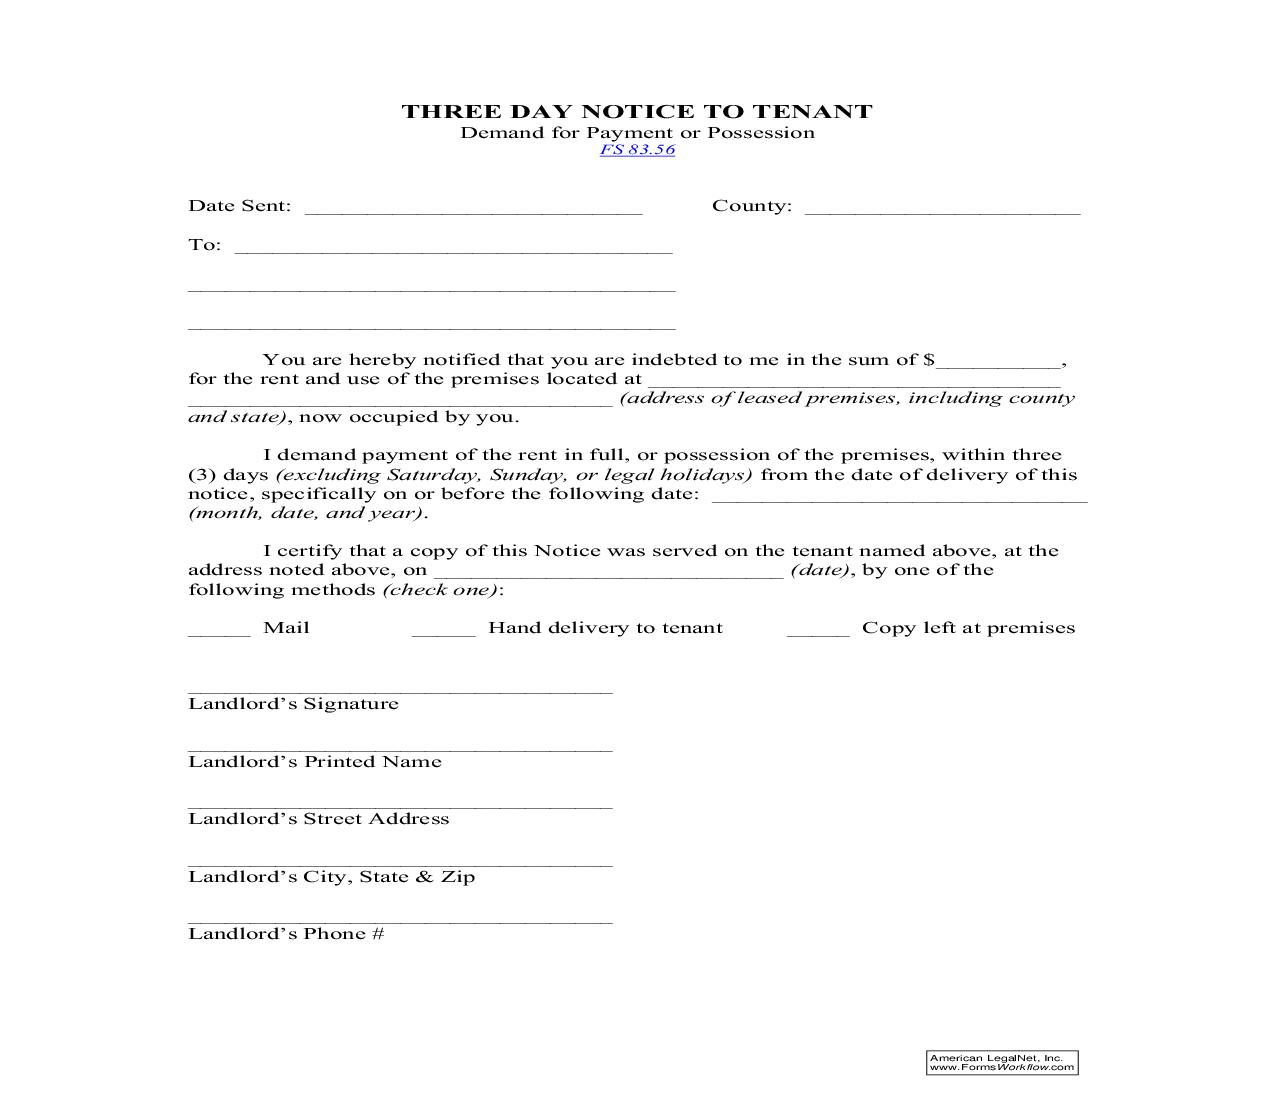 Three Day Notice To Tenant (Demand For Payment Or Possession)   Pdf Fpdf Doc Docx   Florida